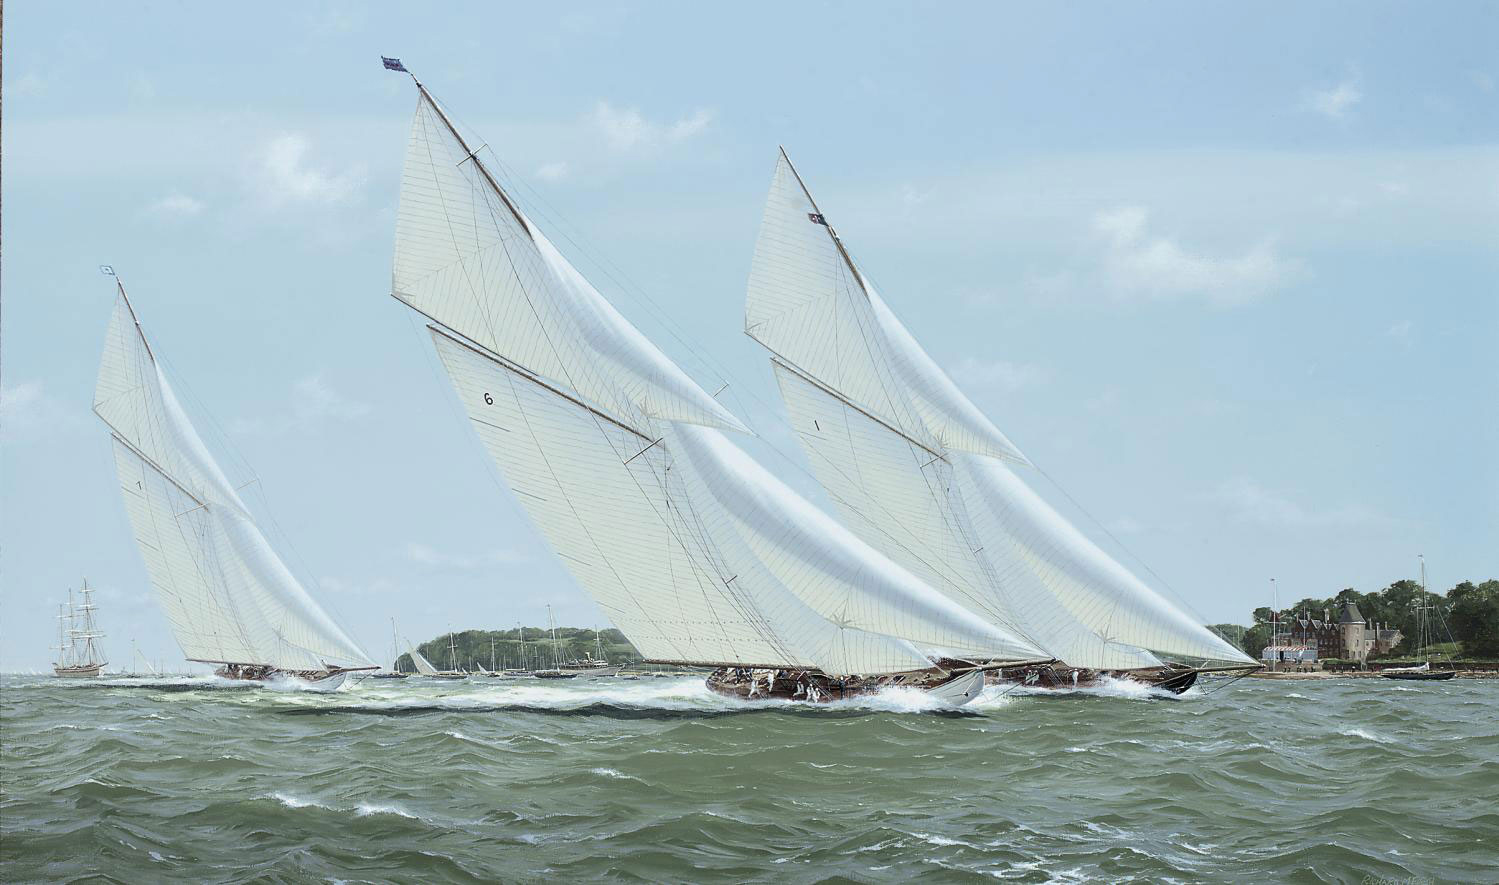 Britannia and Lulworth powering to windward off the Royal Yacht Squadron, Cowes, with White Heather (II) trailing behind